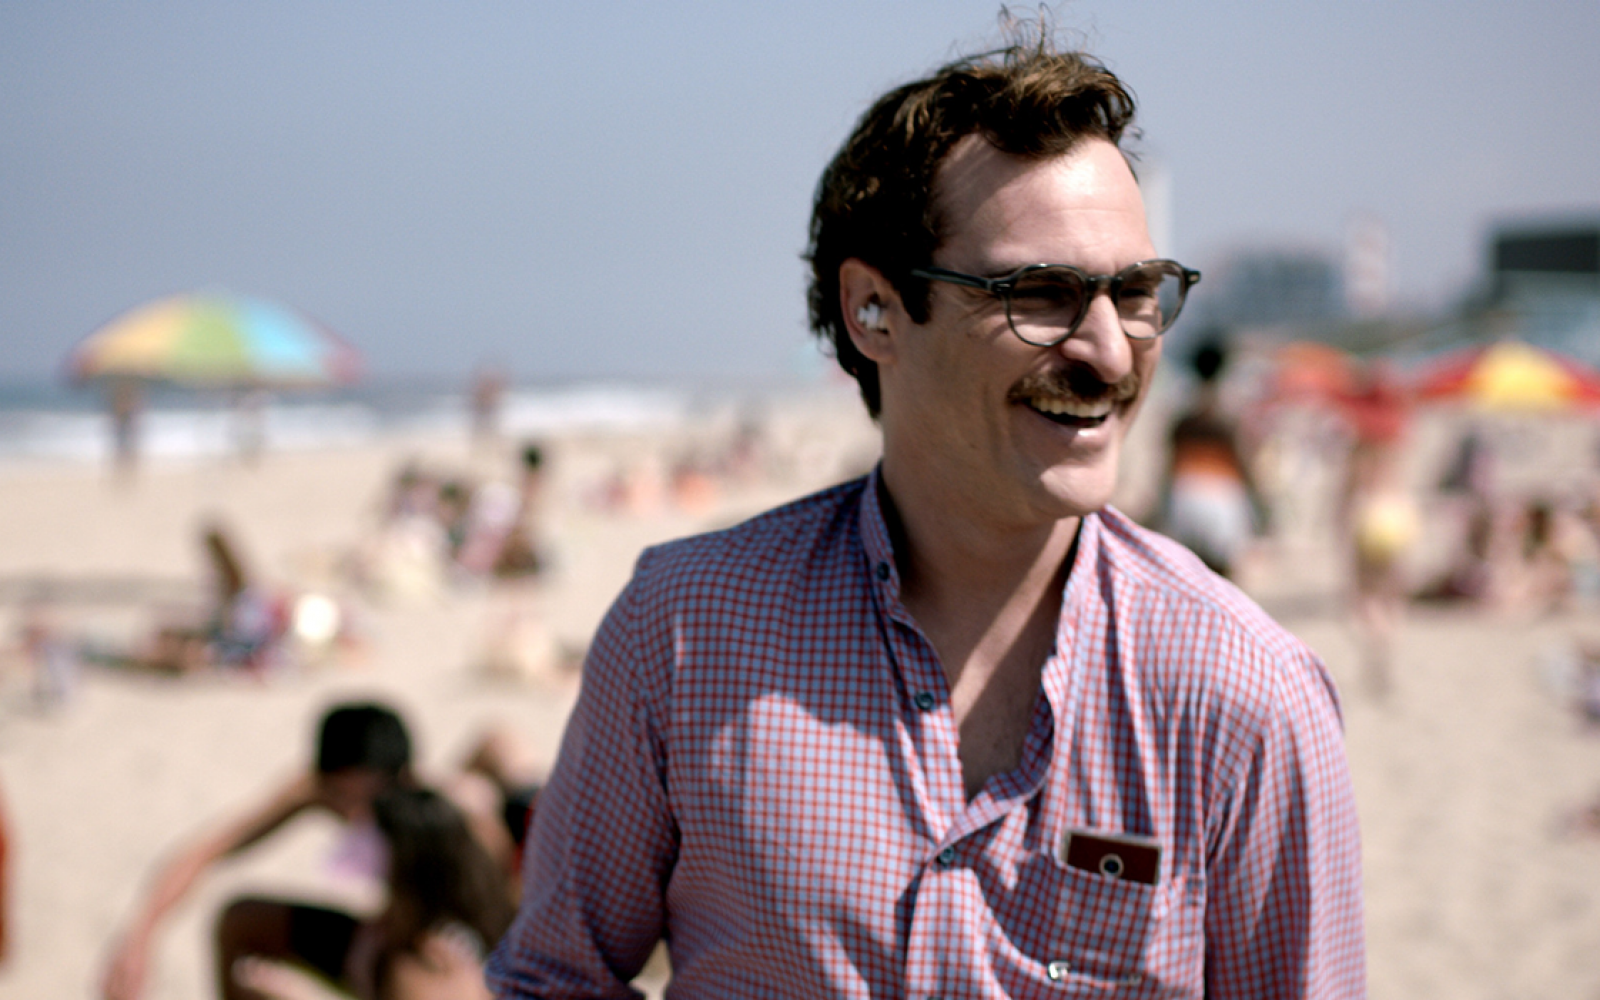 12 Truly Genuine Quotes From 'Her' That Describe The Simplicity Of Love